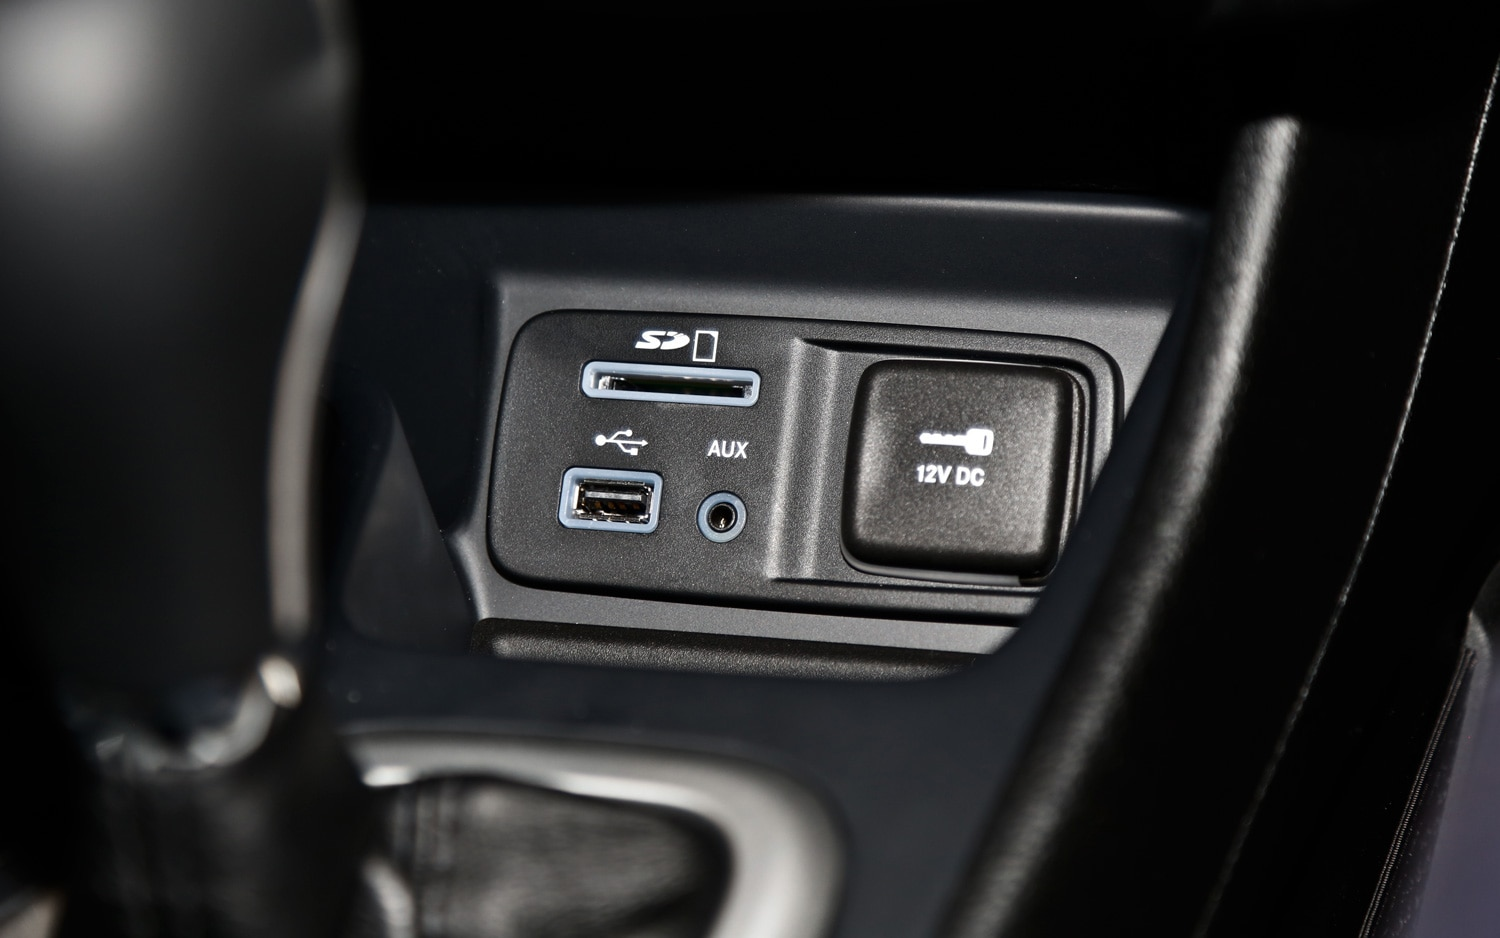 2014 Jeep Cherokee Limited plugs